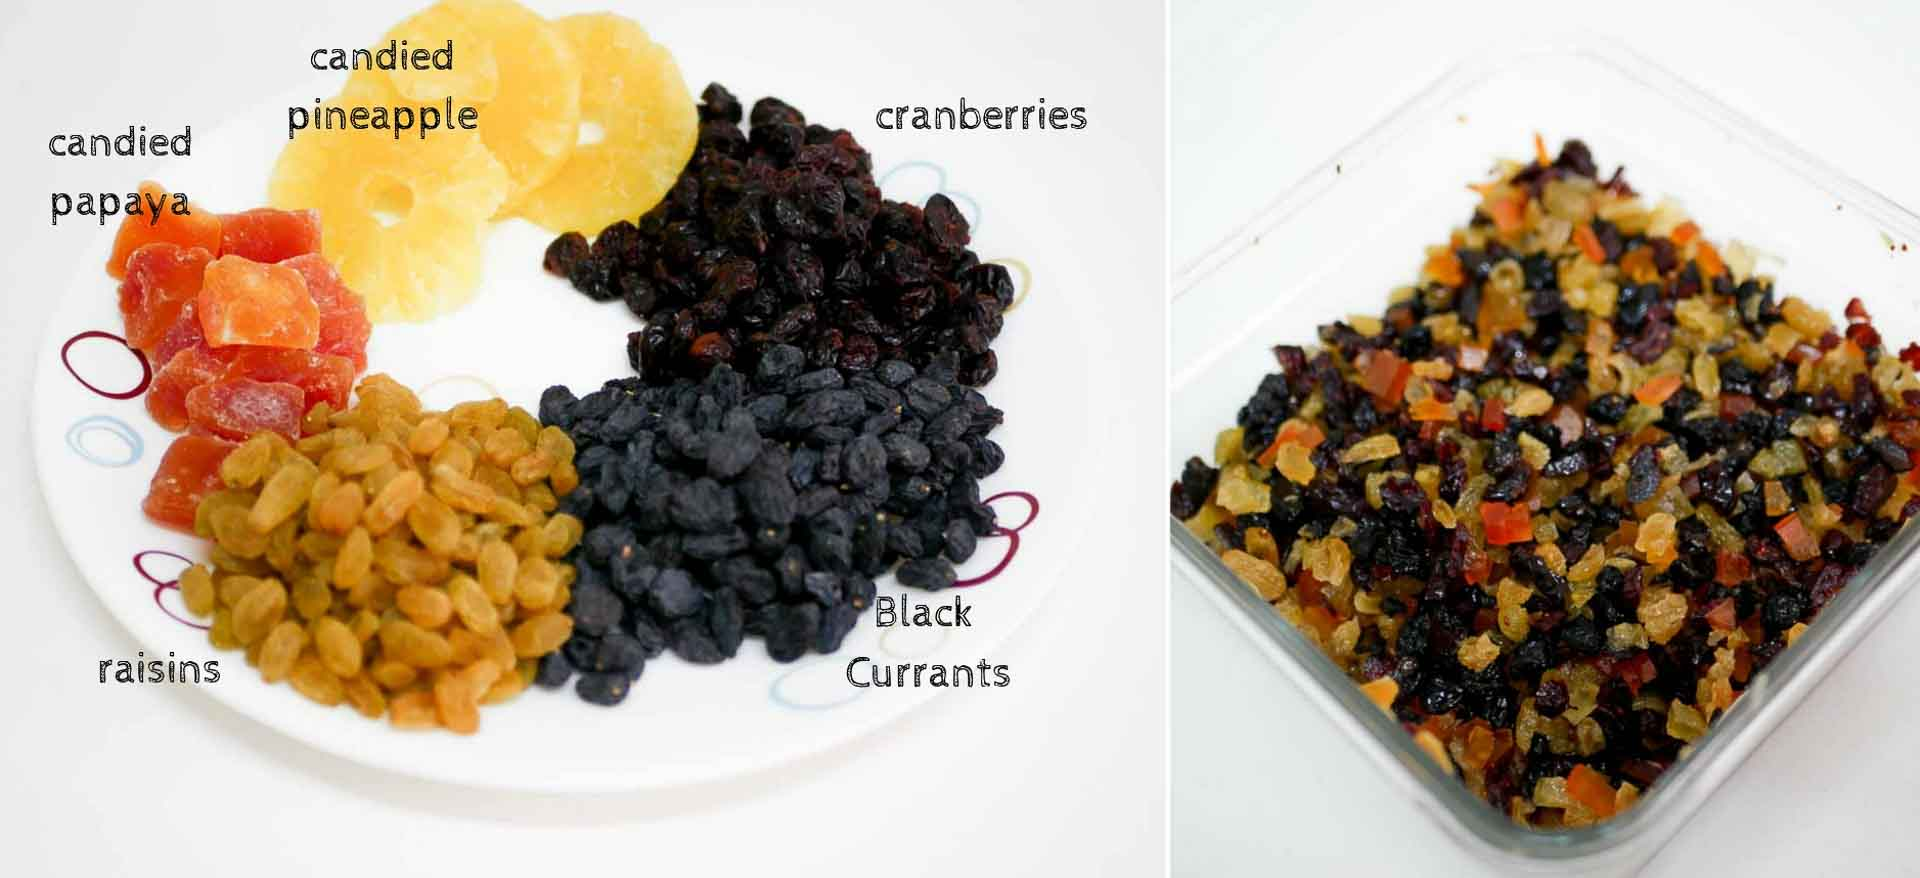 kerala-plum-cake-christmas-xmas-fruit-cake-recipe-2